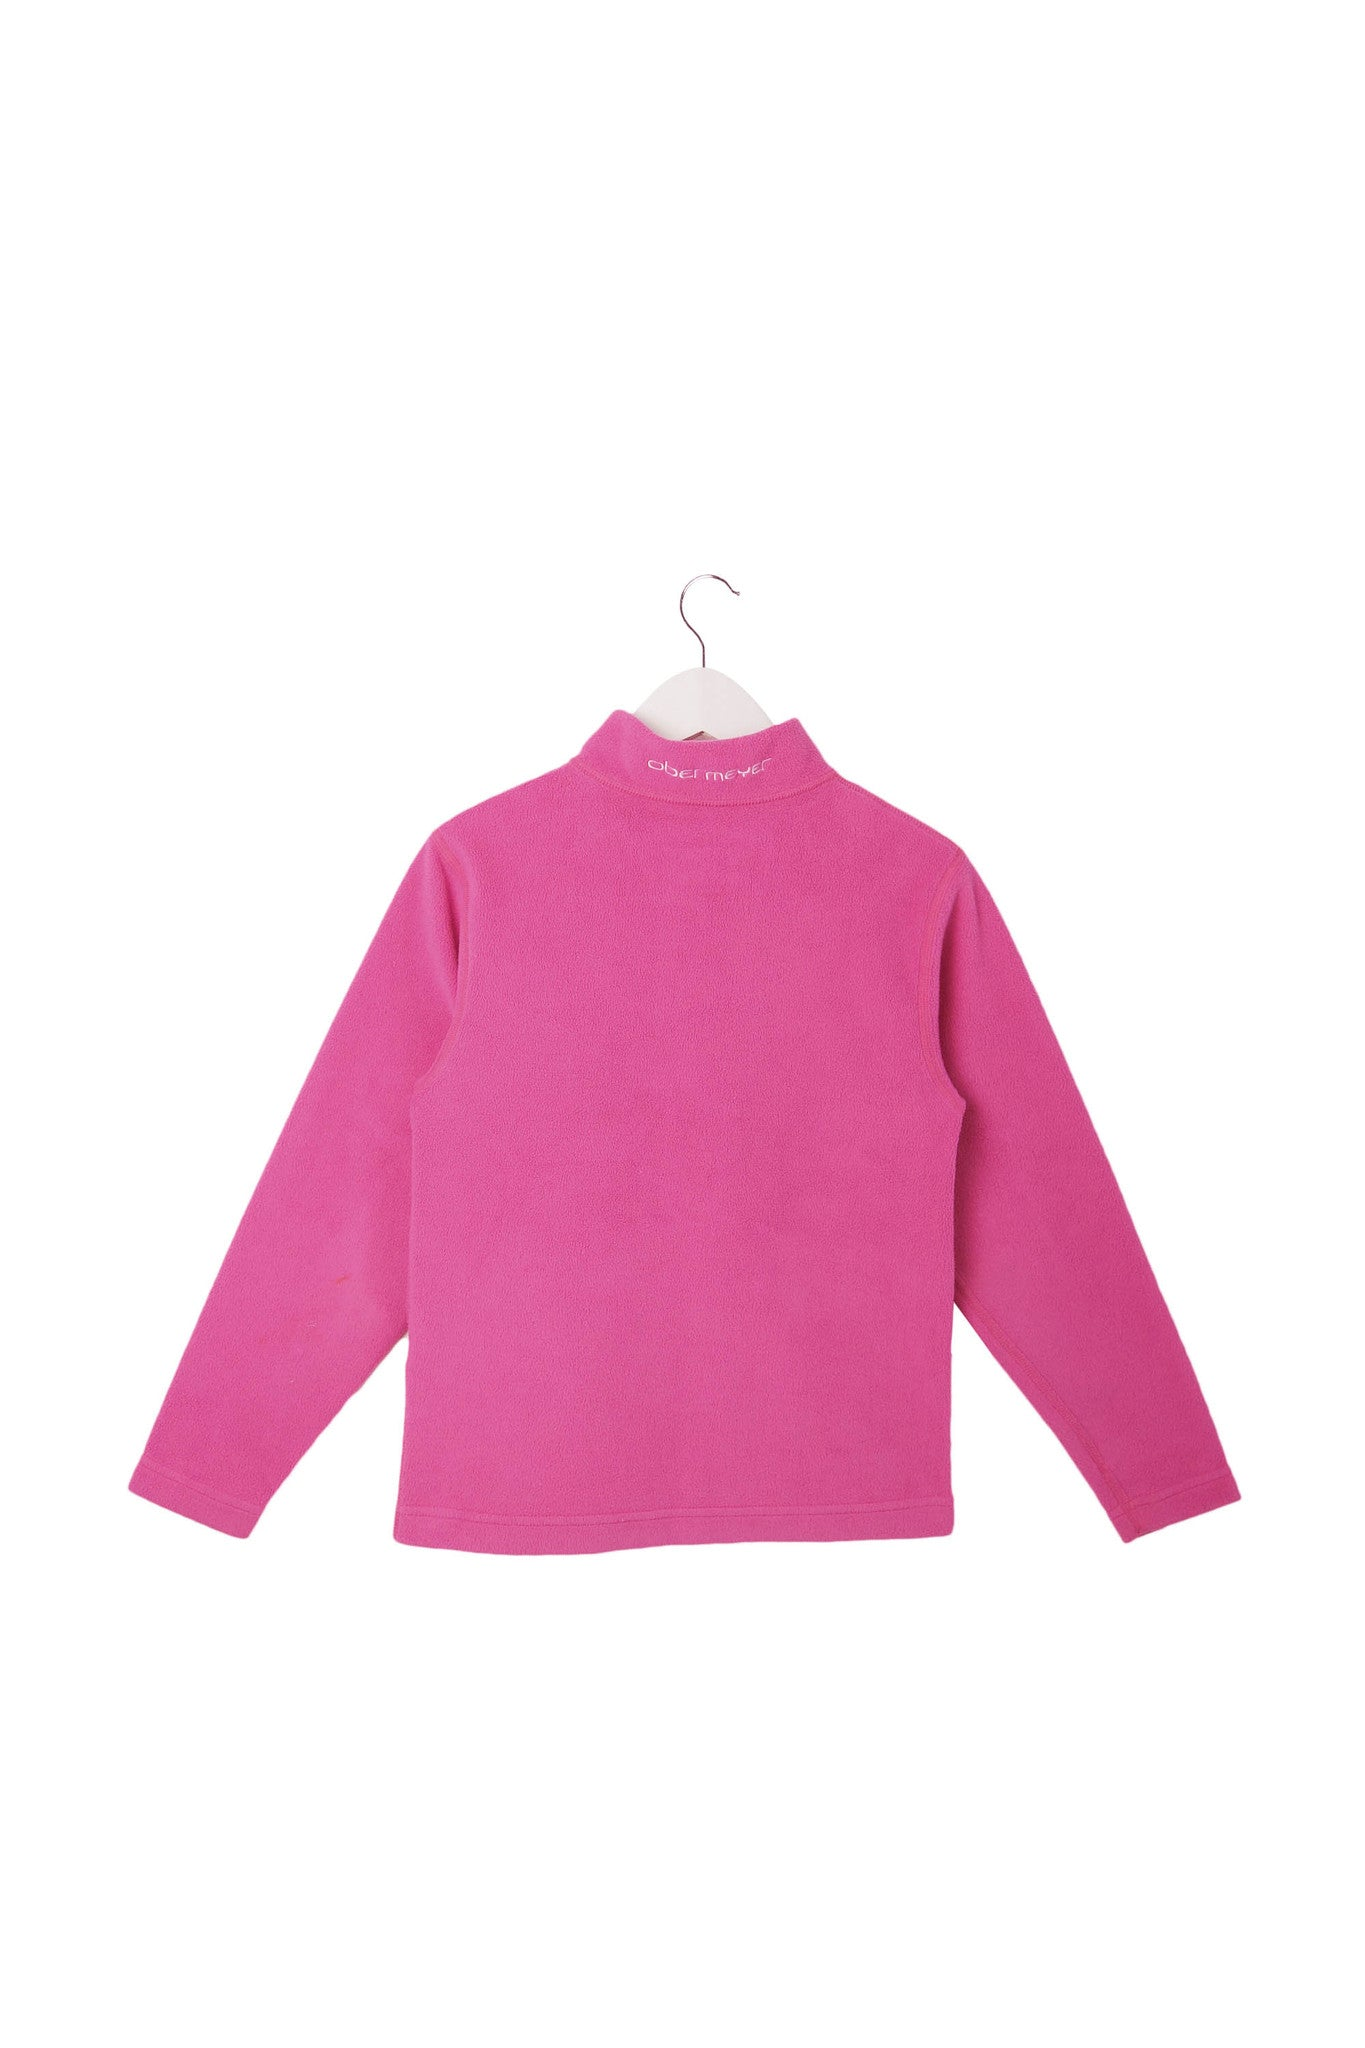 10003242 Obermeyer Kids~Sweater 6-7 (L) at Retykle